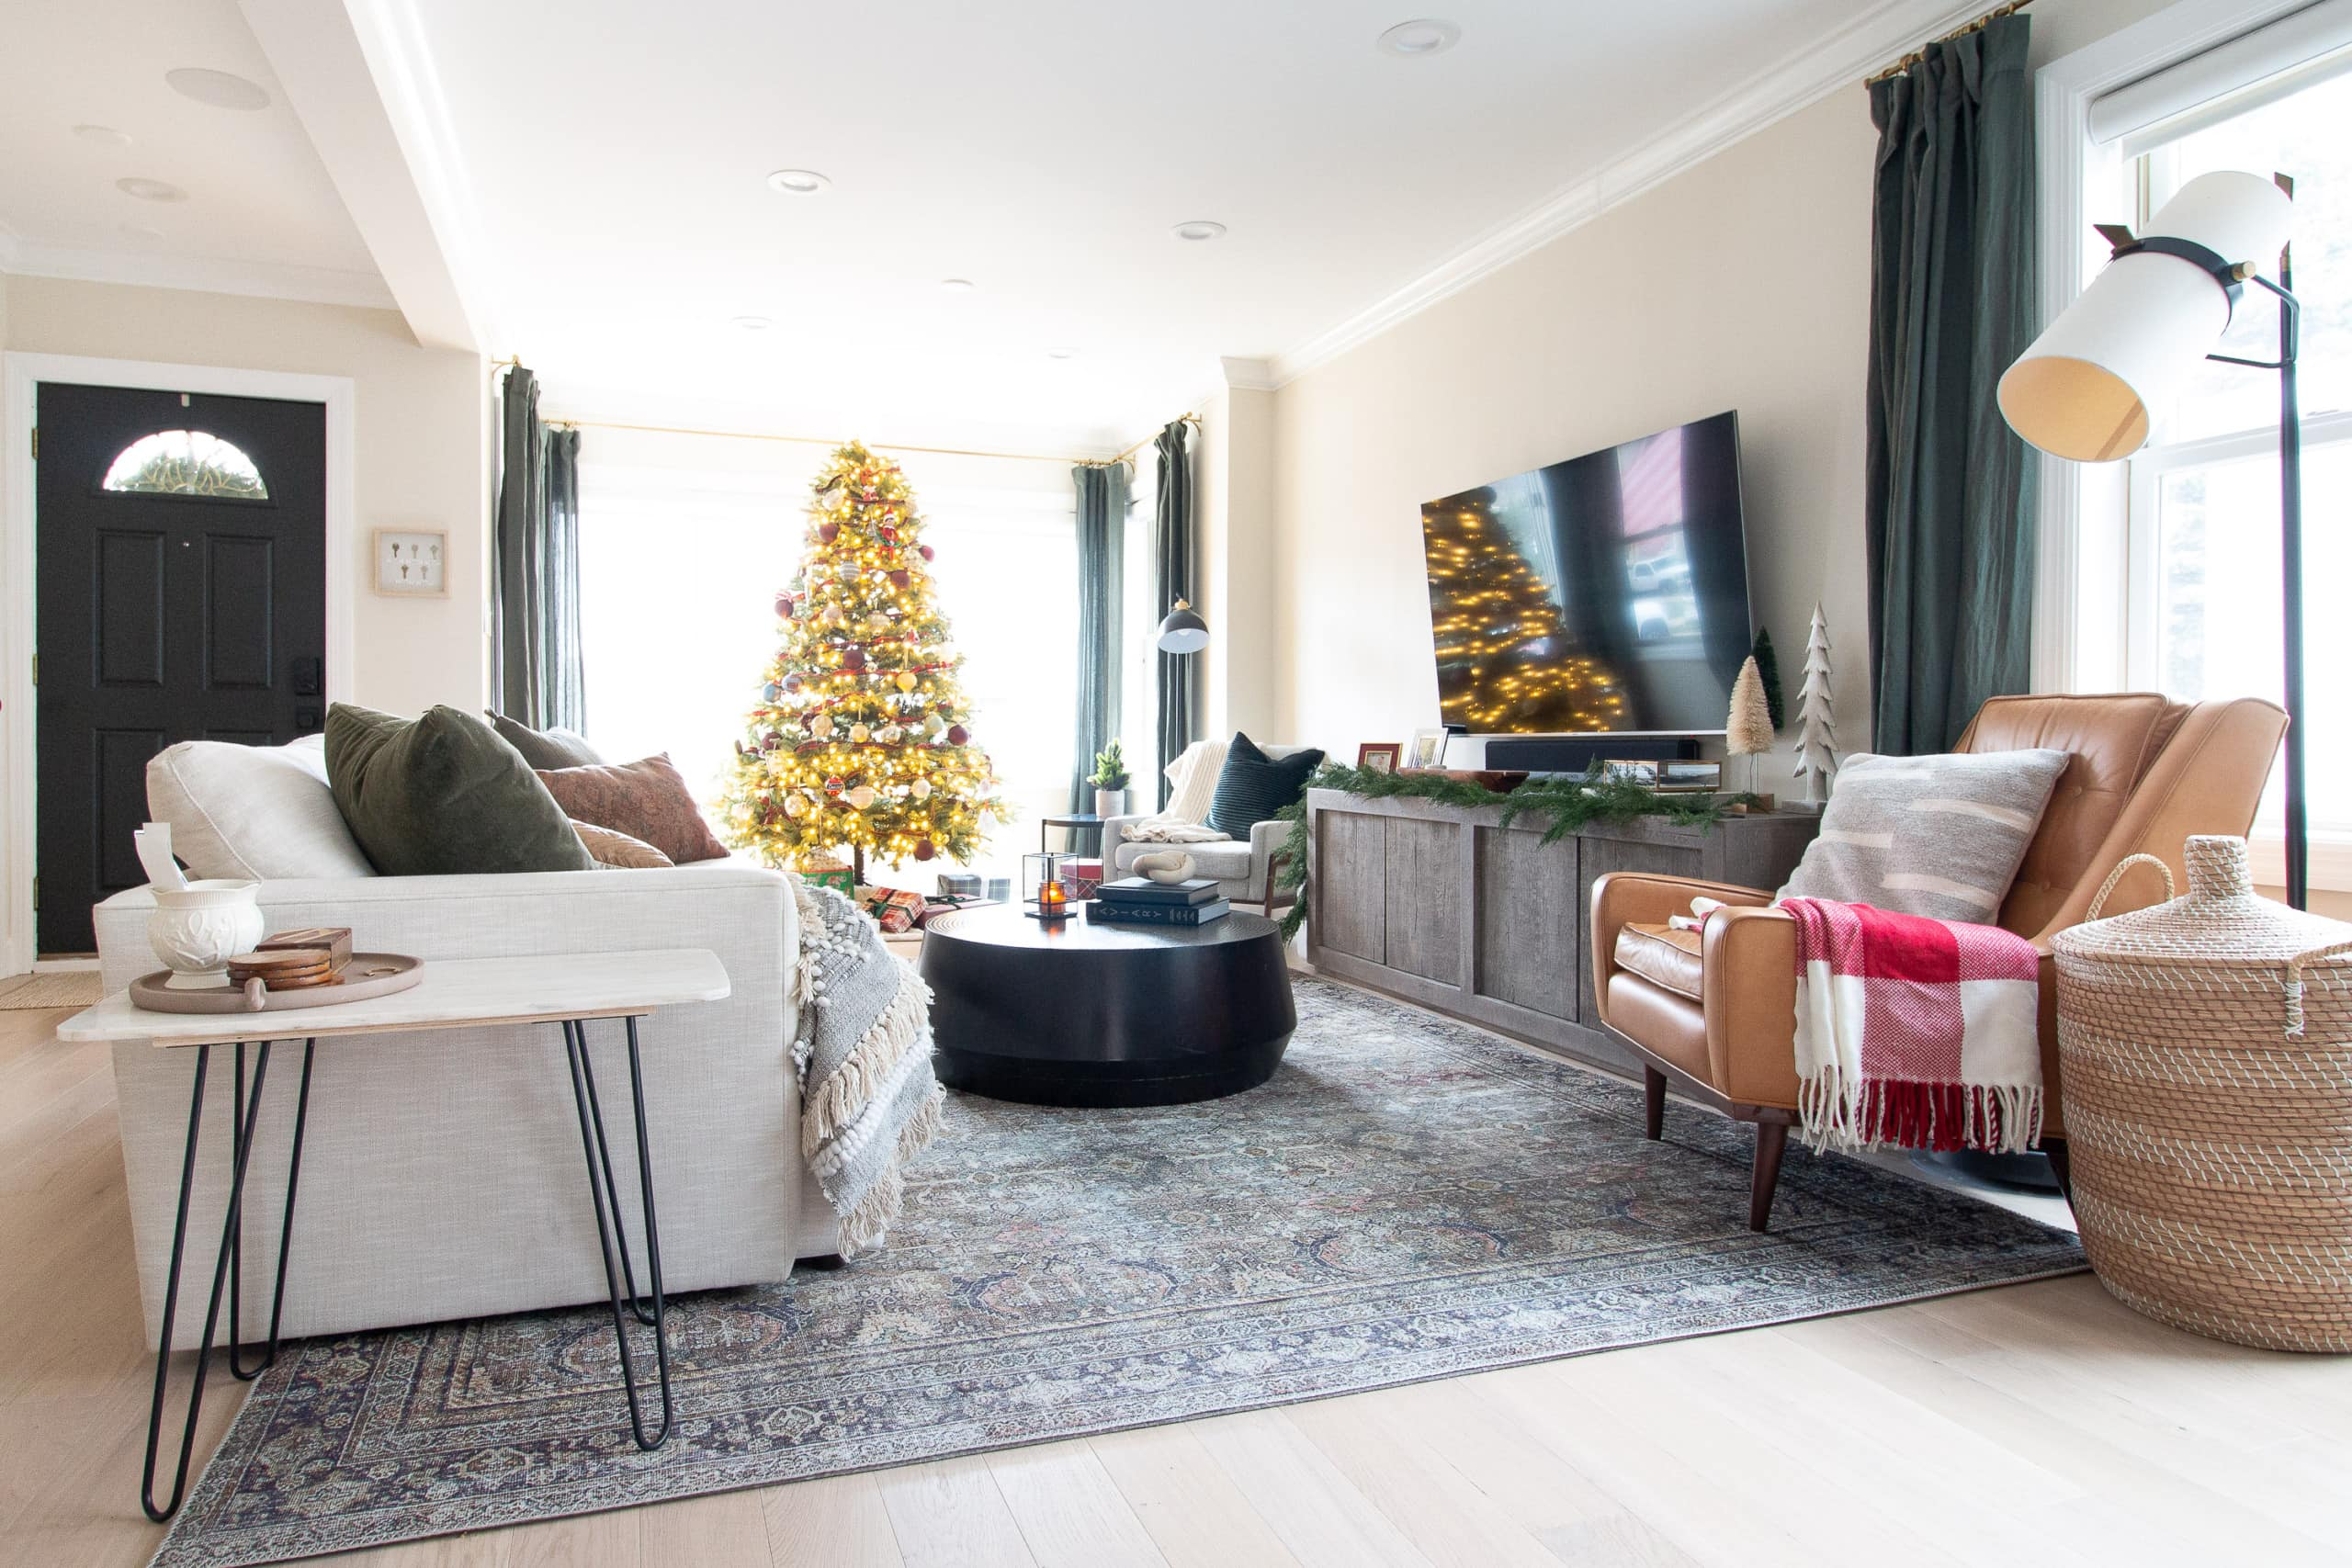 Our 2020 Christmas home tour